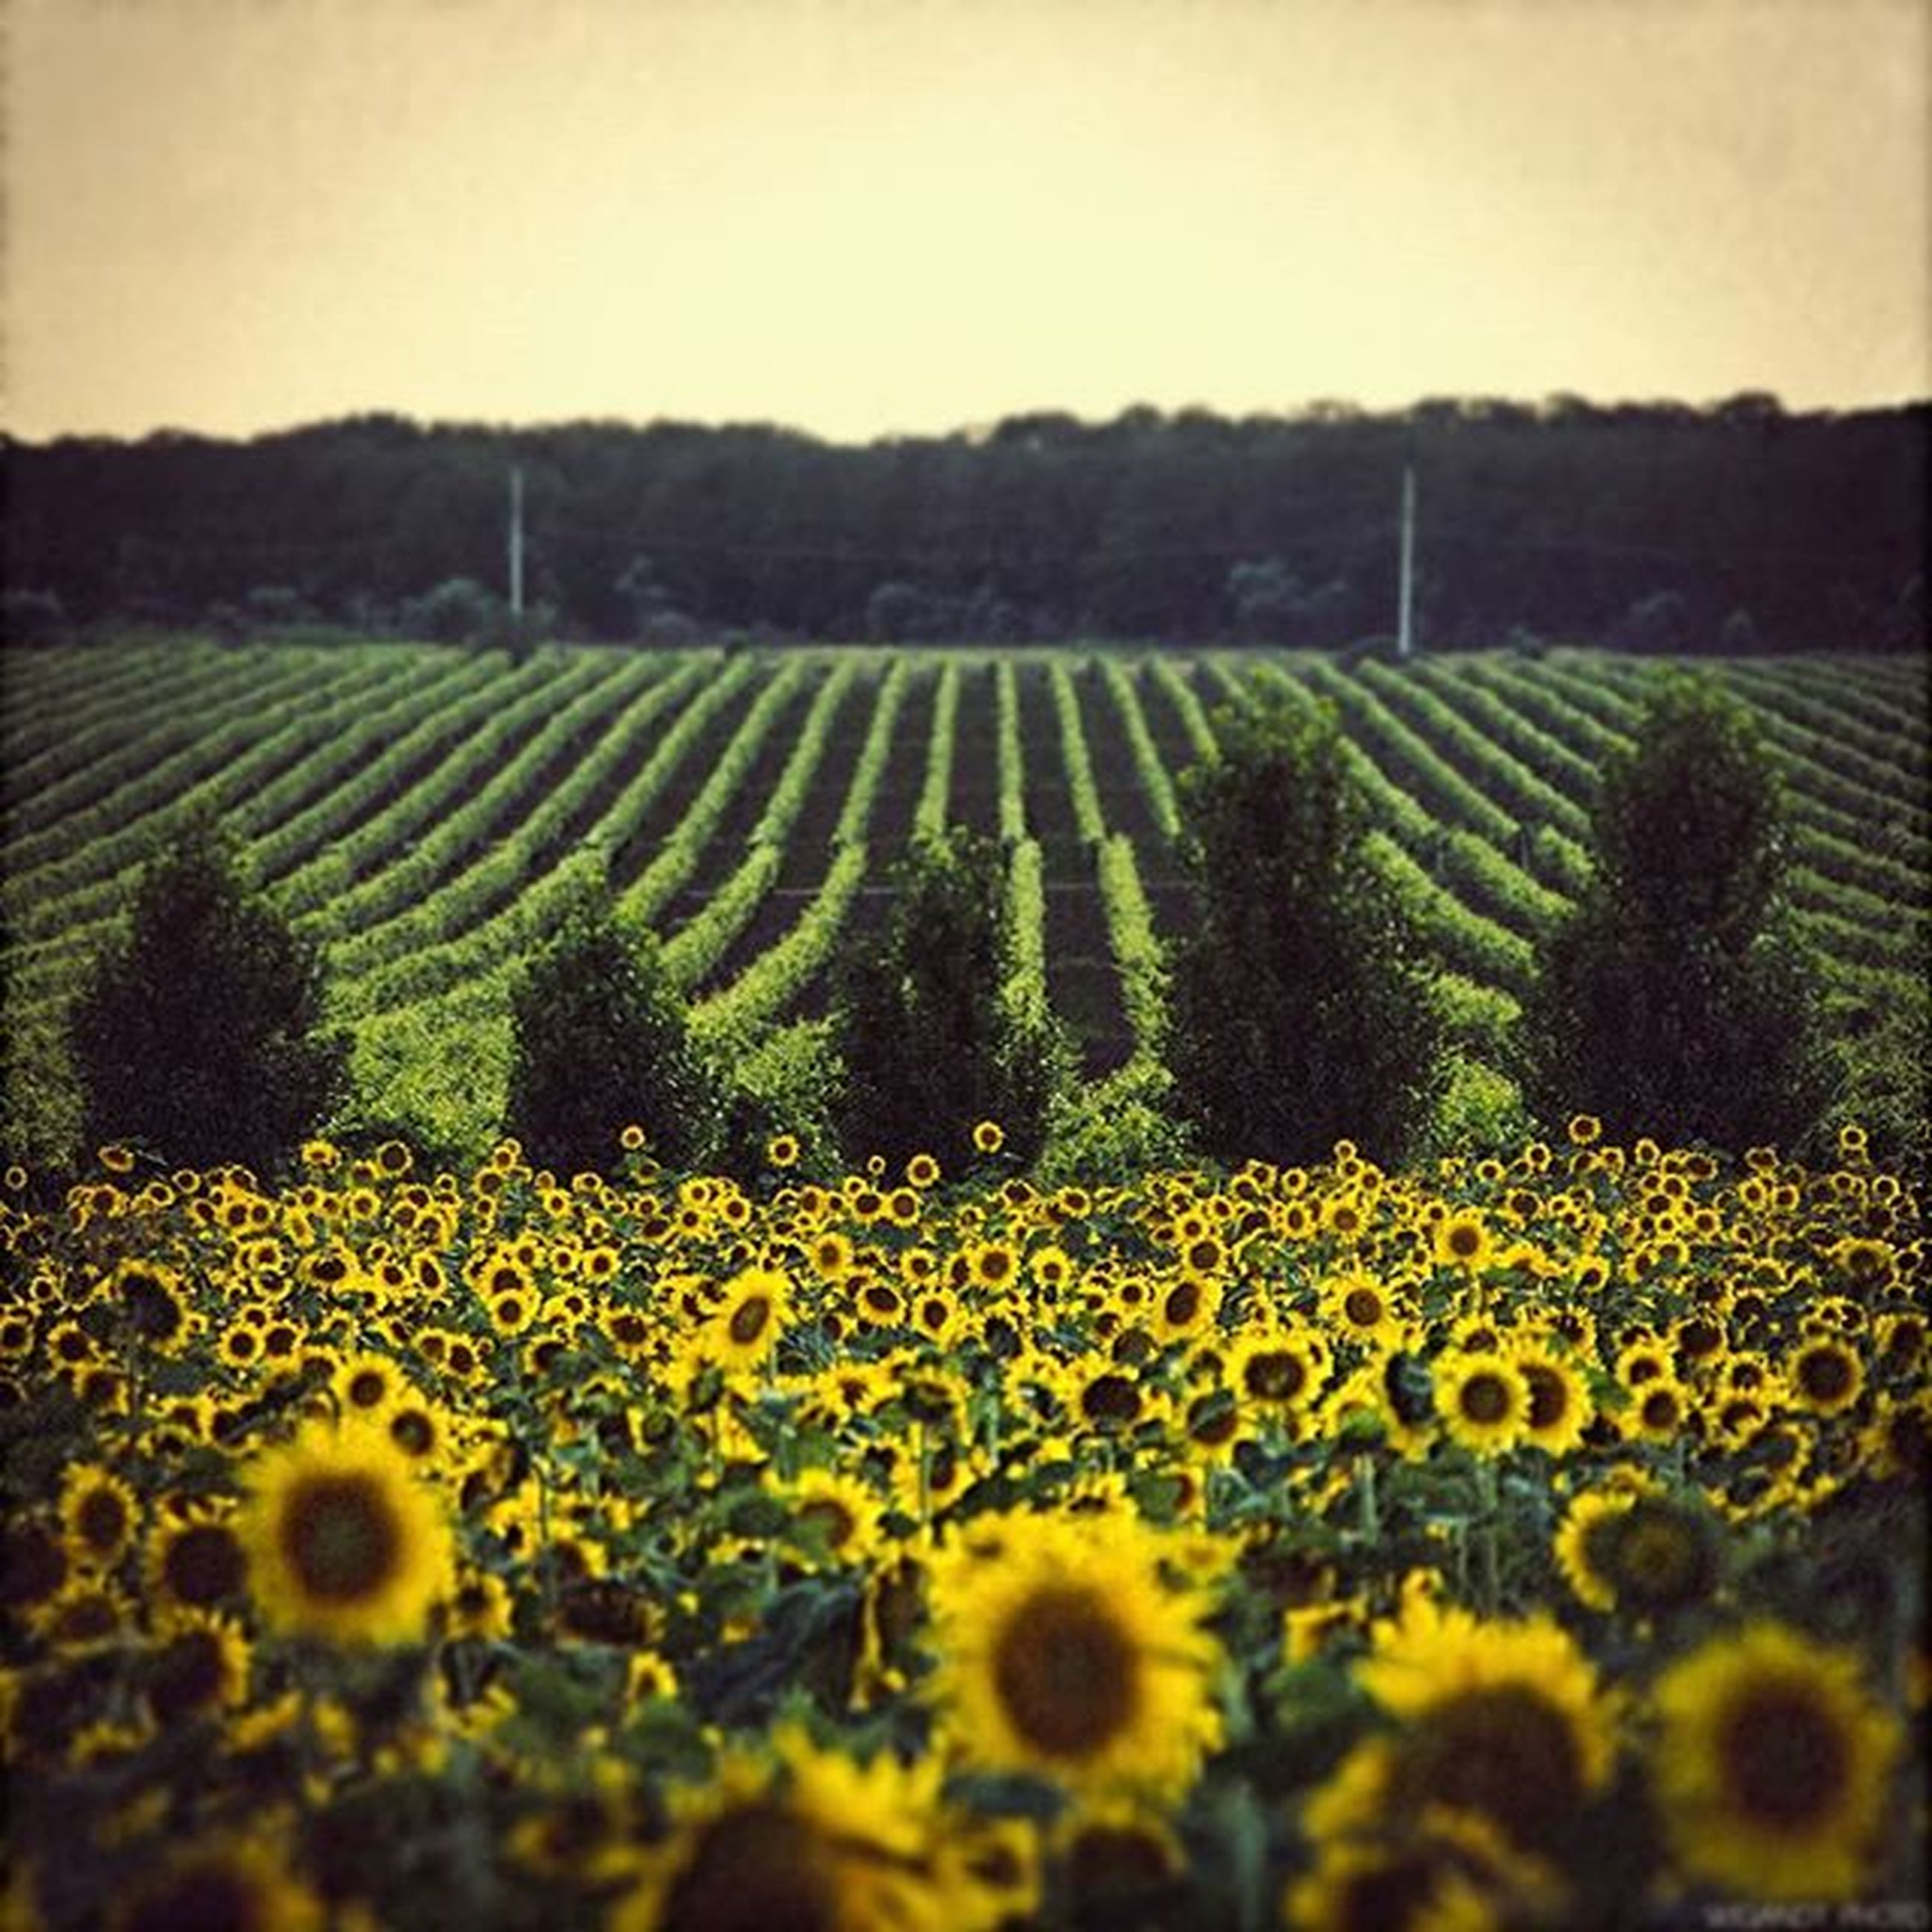 flower, yellow, field, agriculture, growth, rural scene, beauty in nature, freshness, landscape, nature, tranquil scene, farm, fragility, sunflower, crop, tranquility, scenics, abundance, plant, cultivated land